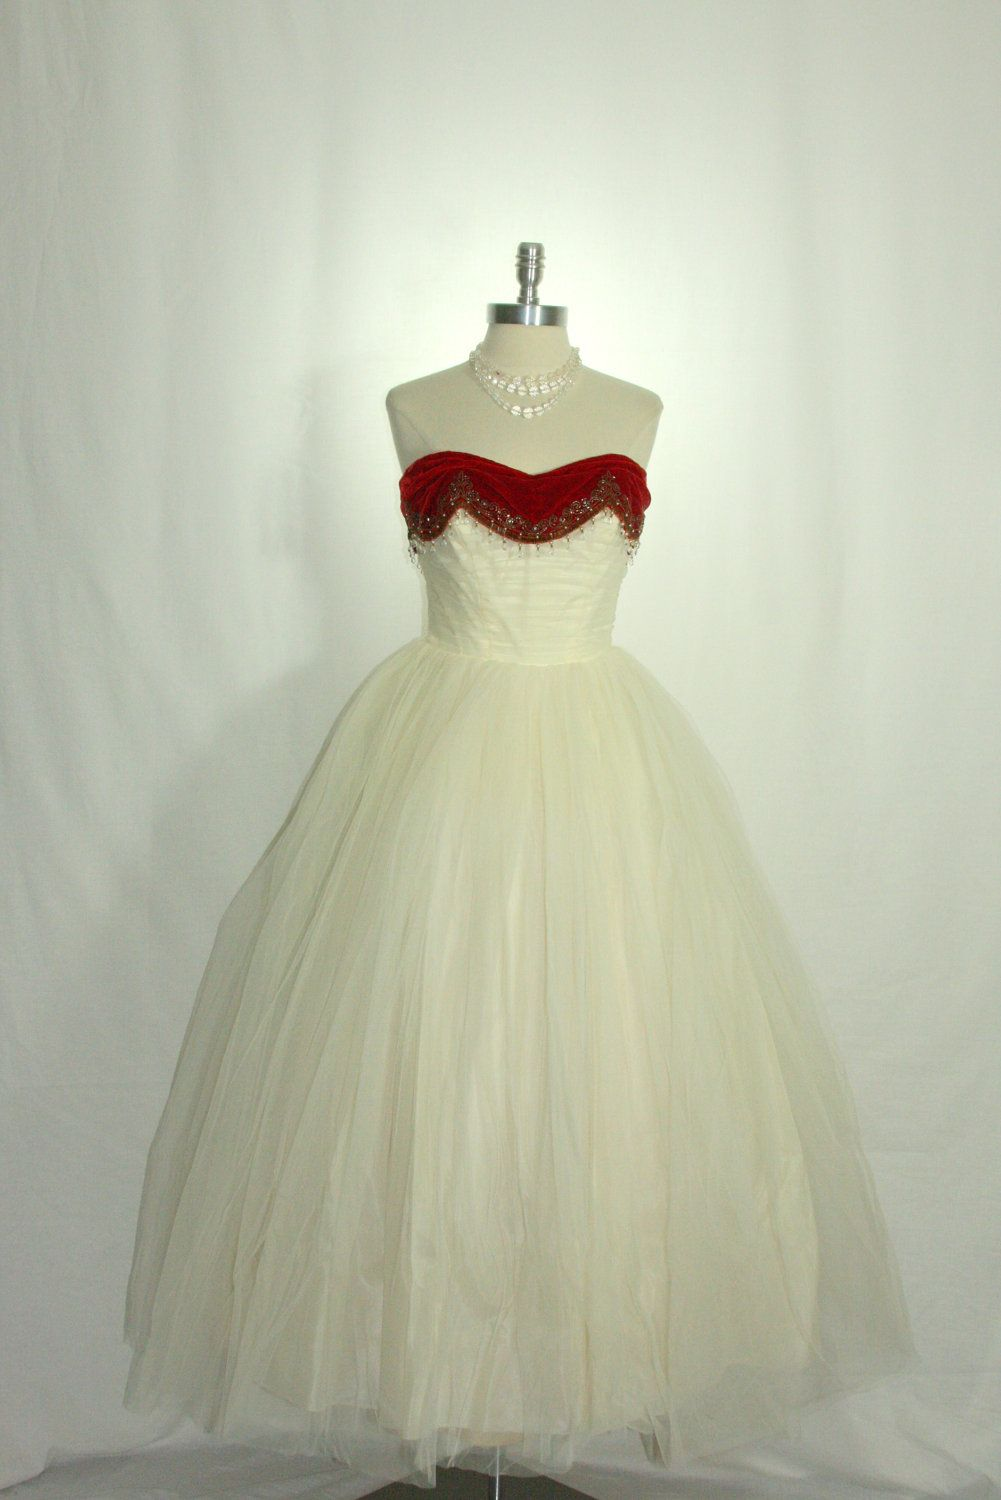 Us vintage wedding dress party prom ivory tulle princess dream